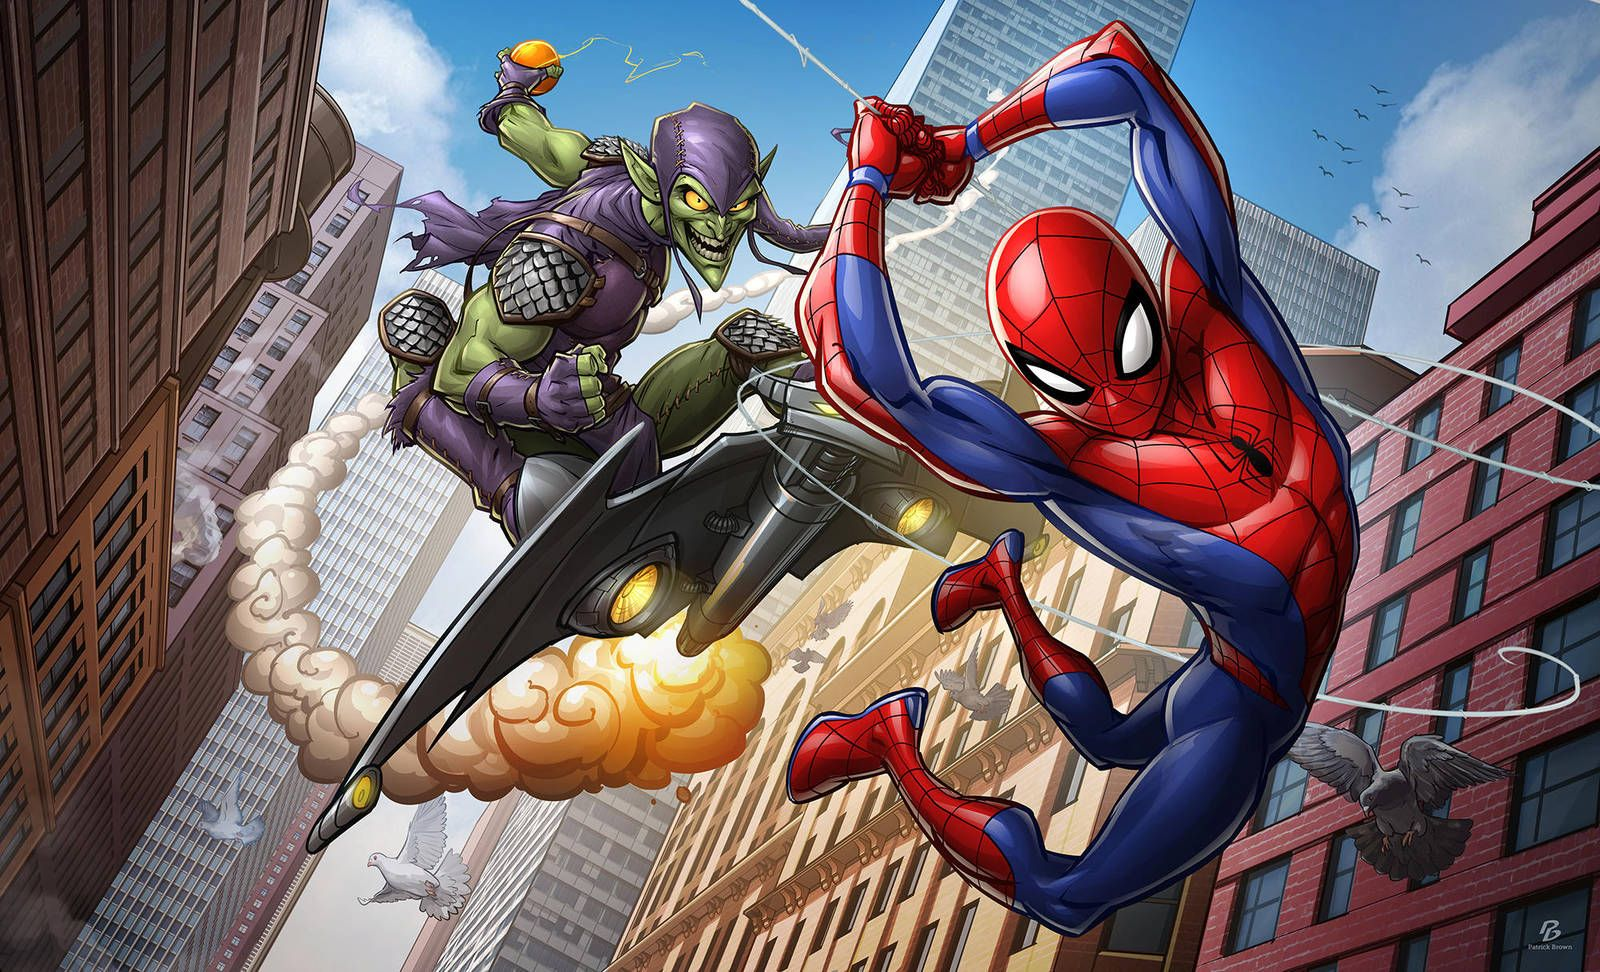 Spider Man The Animated Series By Patrickbrown Spiderman Spider Man Animated Series Amazing Spiderman